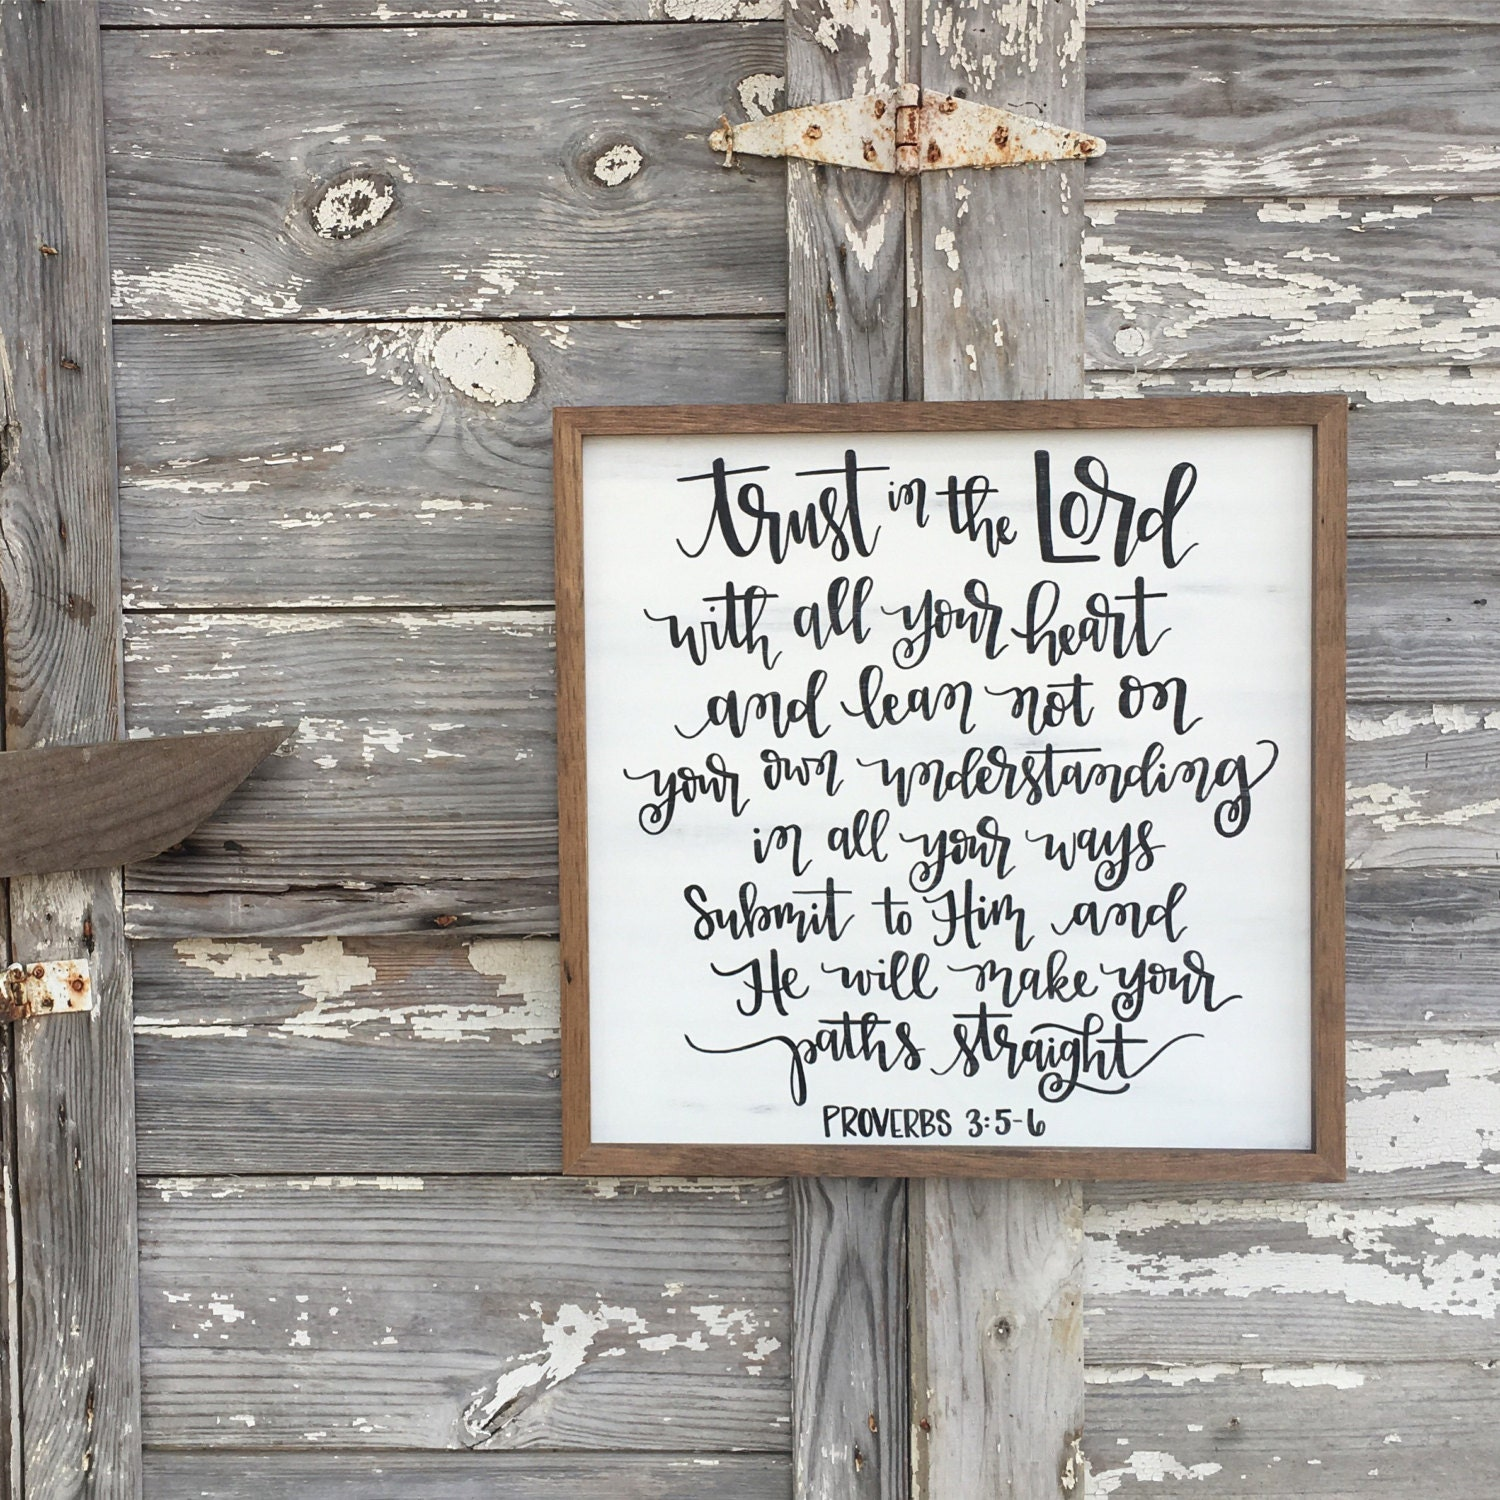 Trust In The Lord Proverbs 3 5 6 Distressed Wood Sign